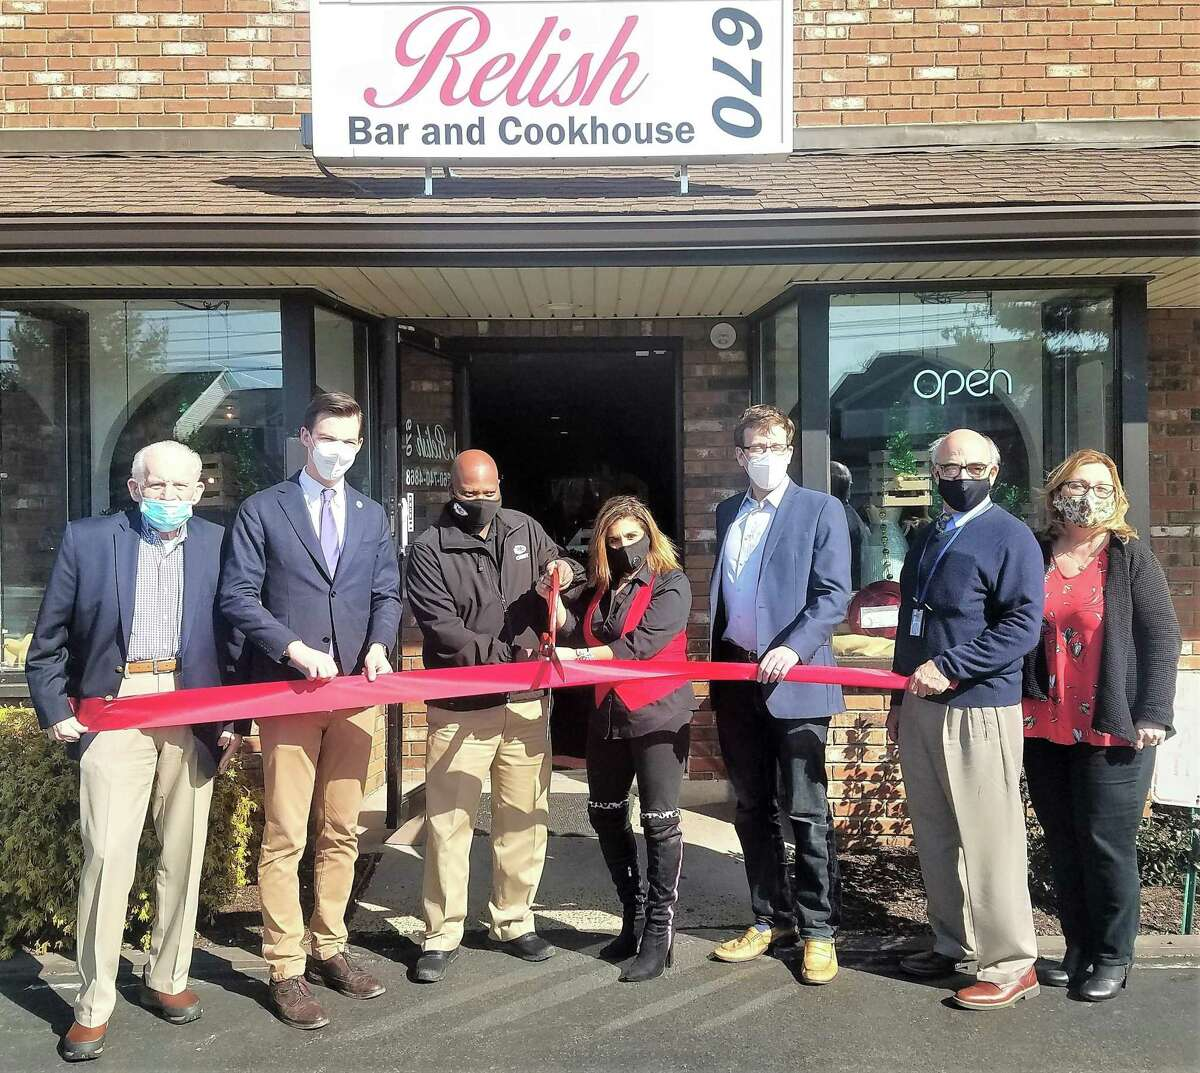 Relish670 in Middletown held a grand opening March 10. From left are Middlesex County Chamber of Commerce President Larry McHugh, Mayor Ben Florsheim, owners Harold Oliver and Debbie Licho, state Sen. Matthew Lesser, Economic Development Specialist Thomas Marano and chamber ambassador and director of fund development for the Middlesex YMCA, Lori Lodge.